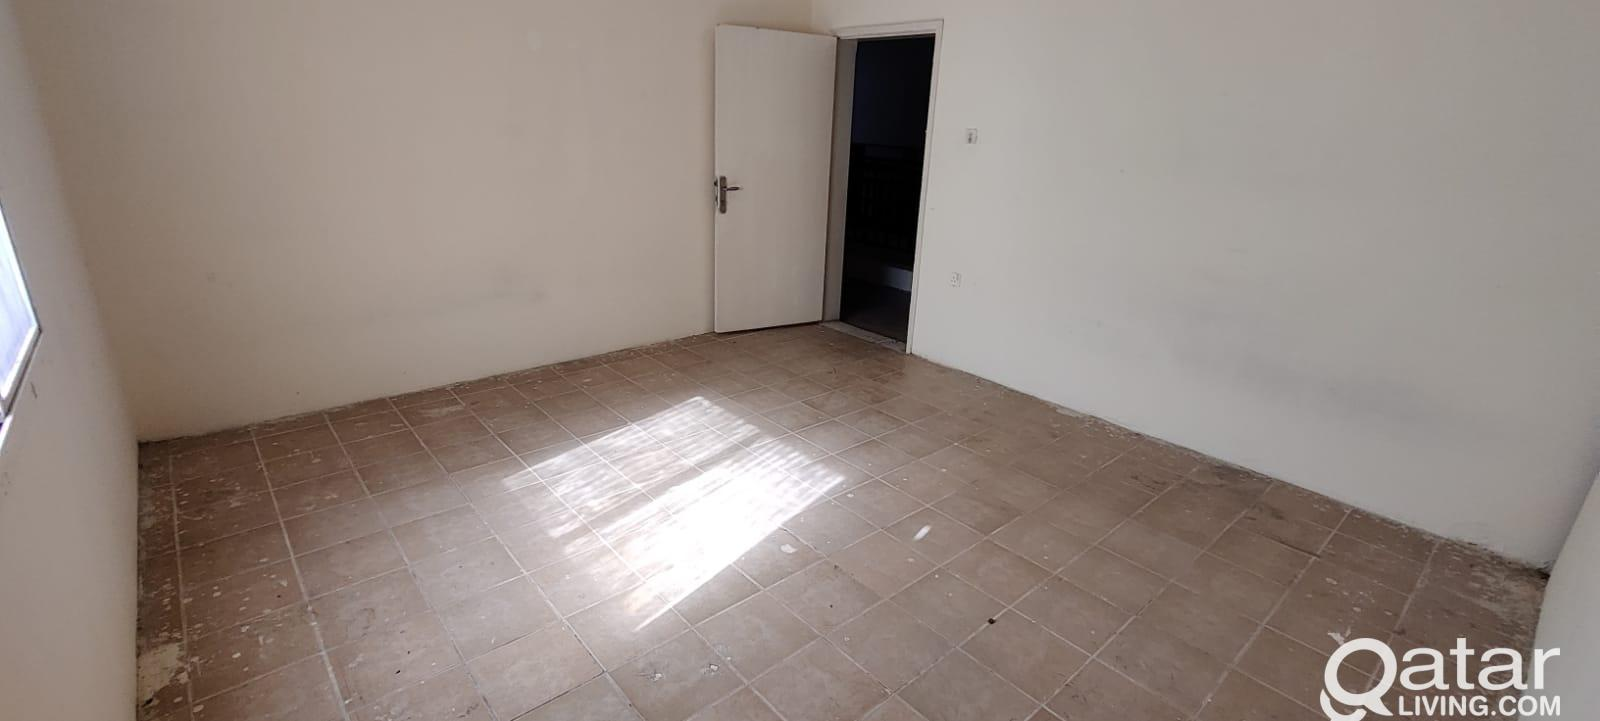 72 Spacious Room - Labor Camp For Rent